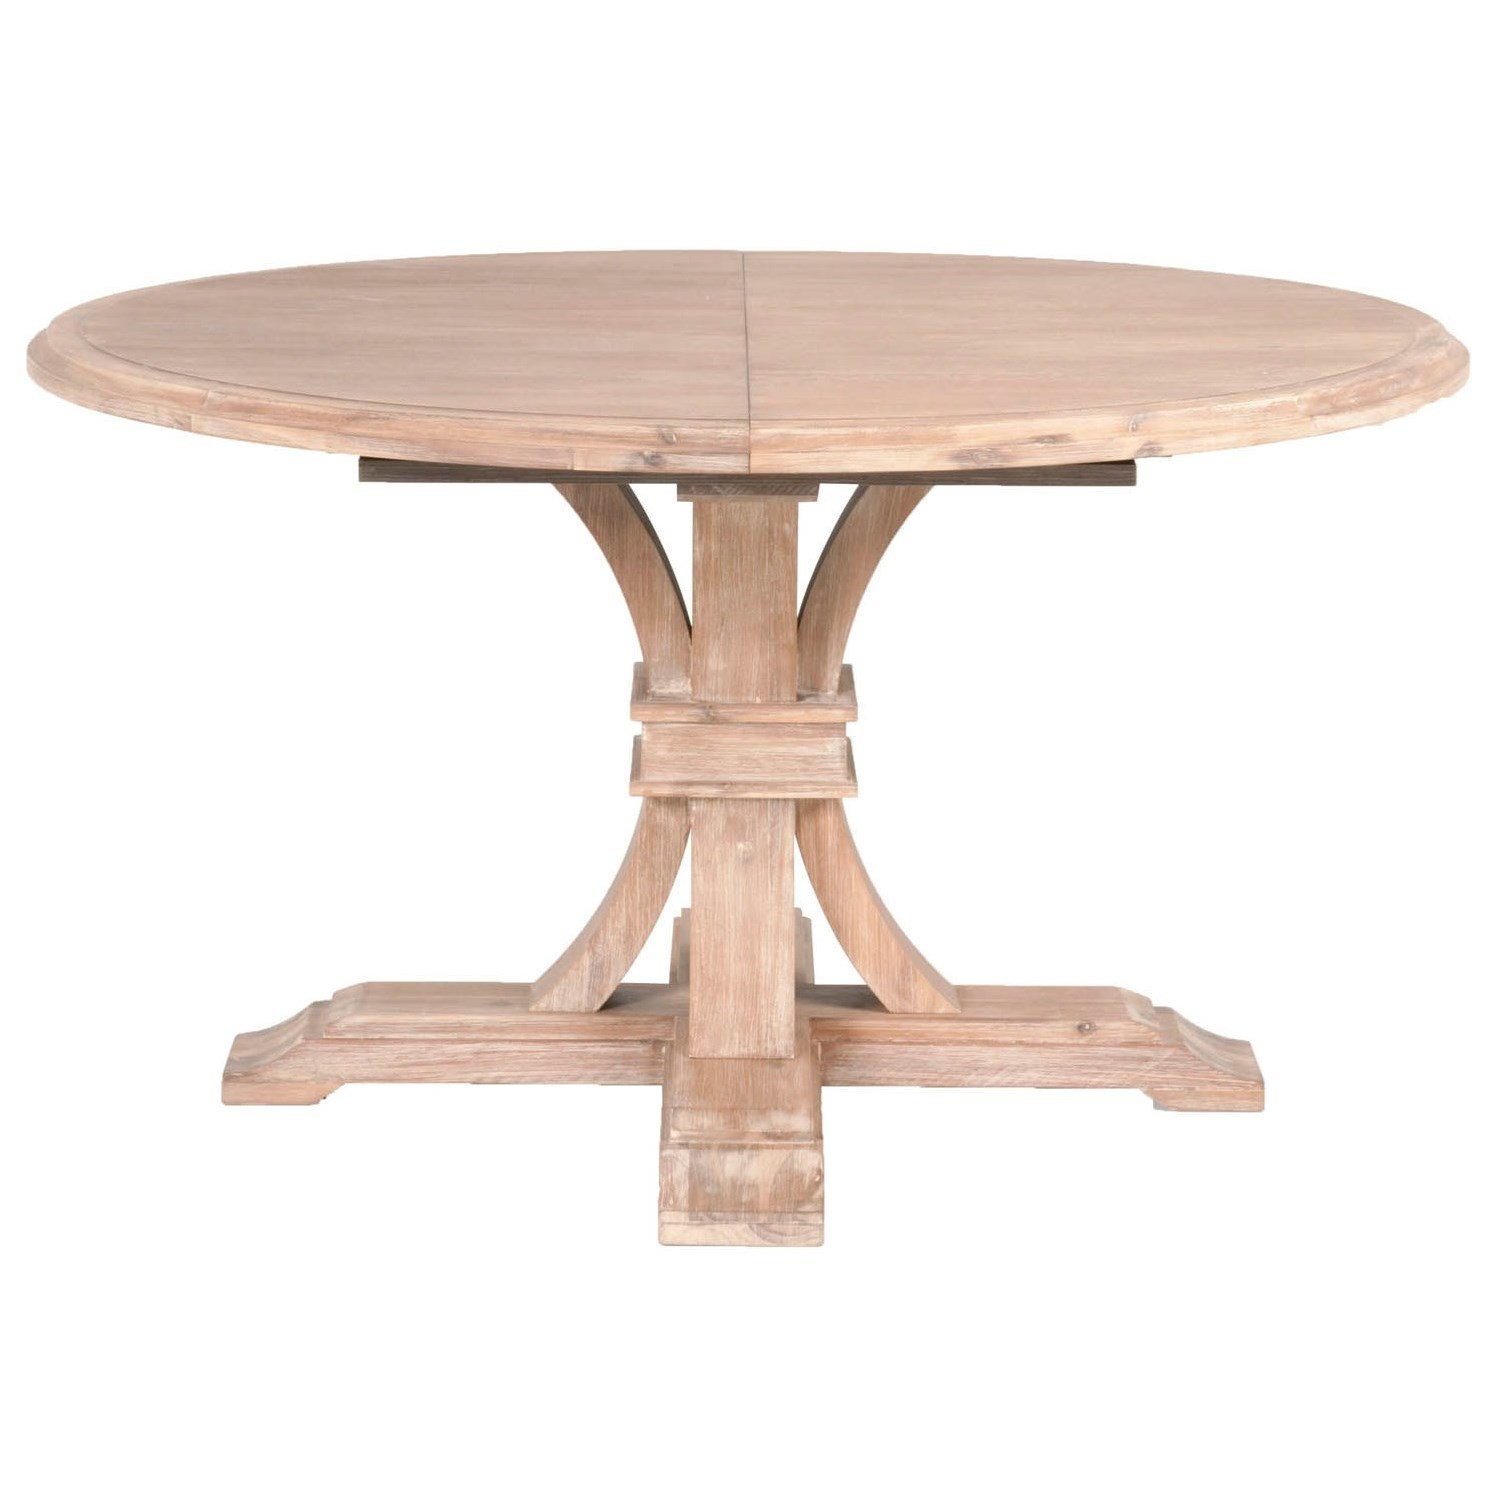 "60 Inch Square Pedestal Table: Orient Express Furniture Traditions 6070.SW Devon 54"" Round Extension Table"